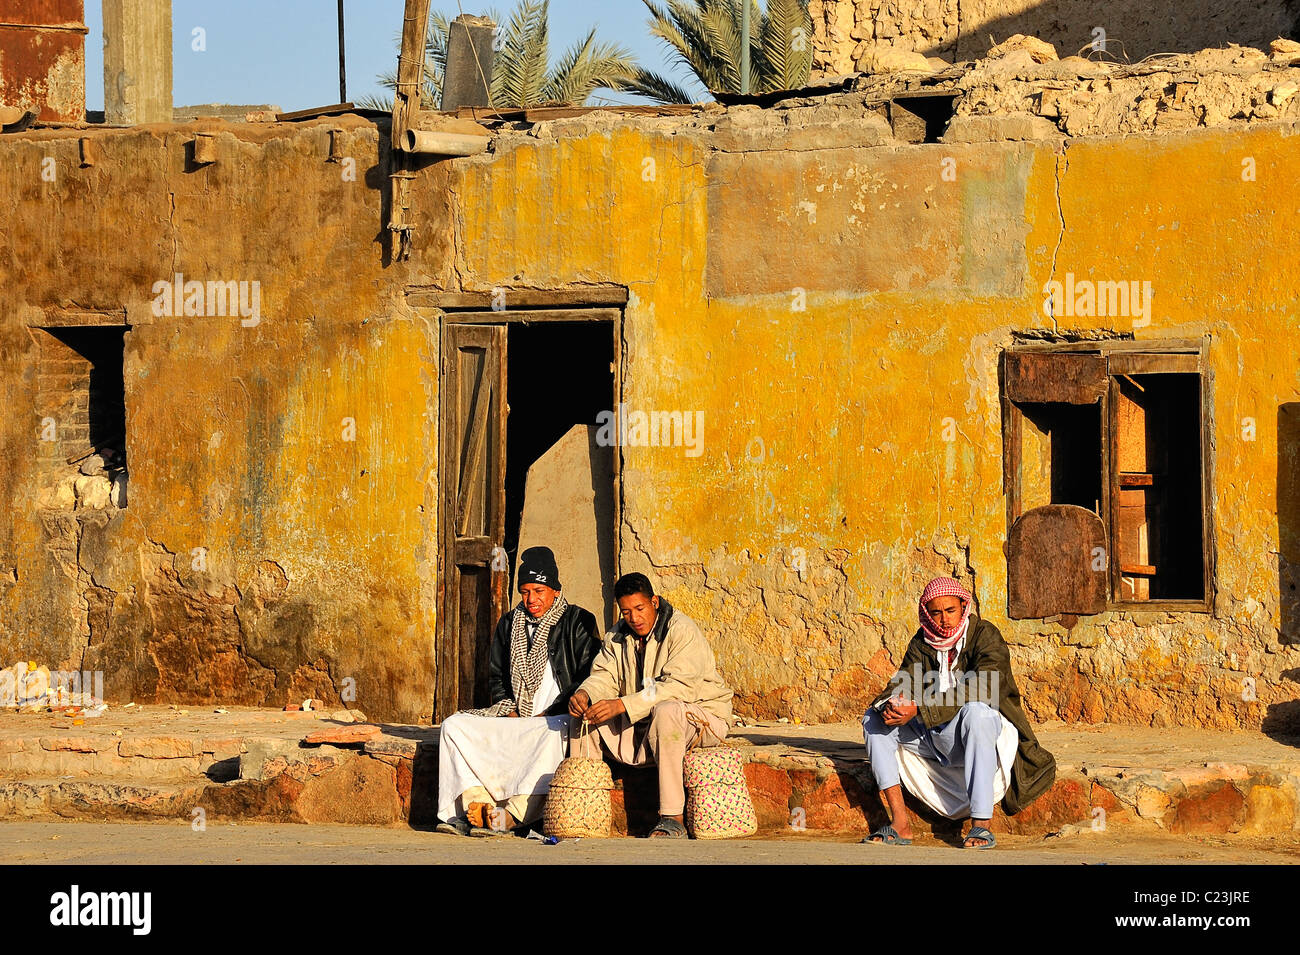 Three Egyptian men sitting on a sidewalk in front a house in a street of the city of Siwa, western desert, Egypt - Stock Image